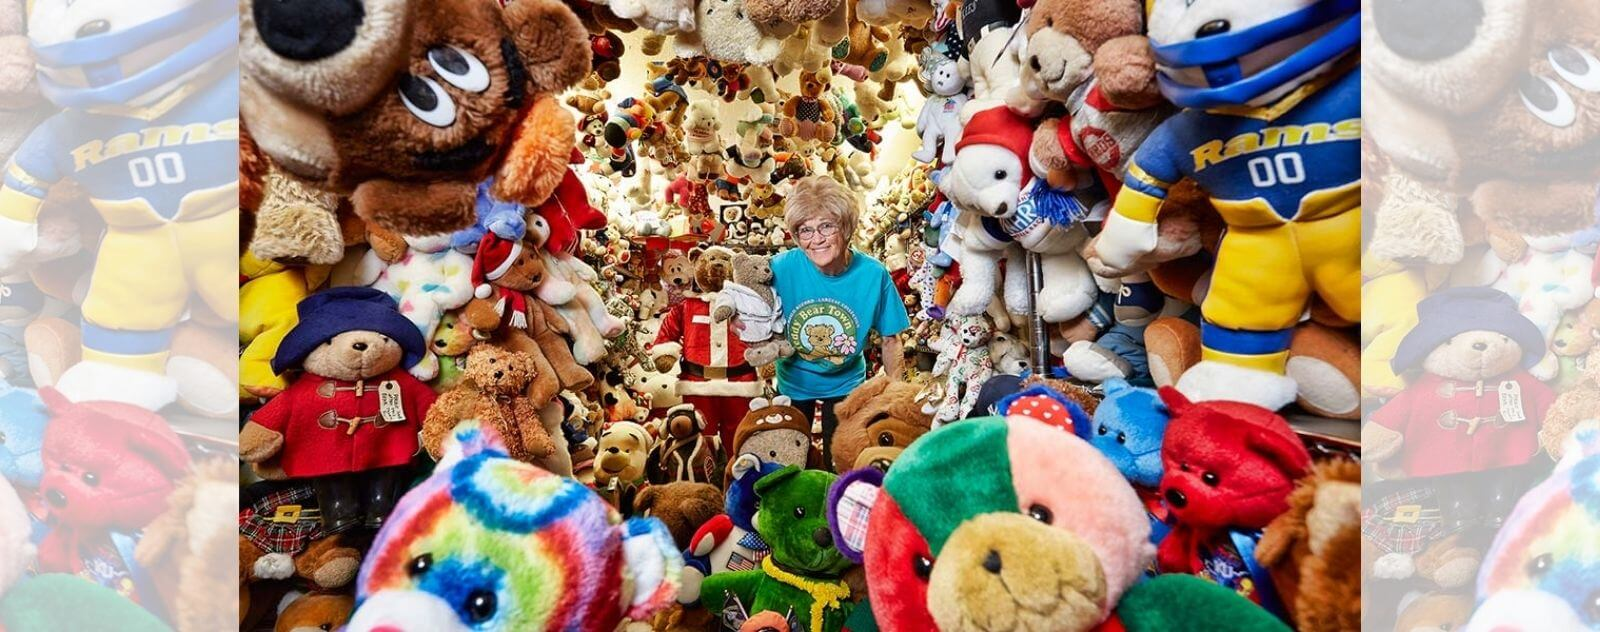 Jackie Miley et la Plus Grande Collection d'Ours en Peluche au Monde